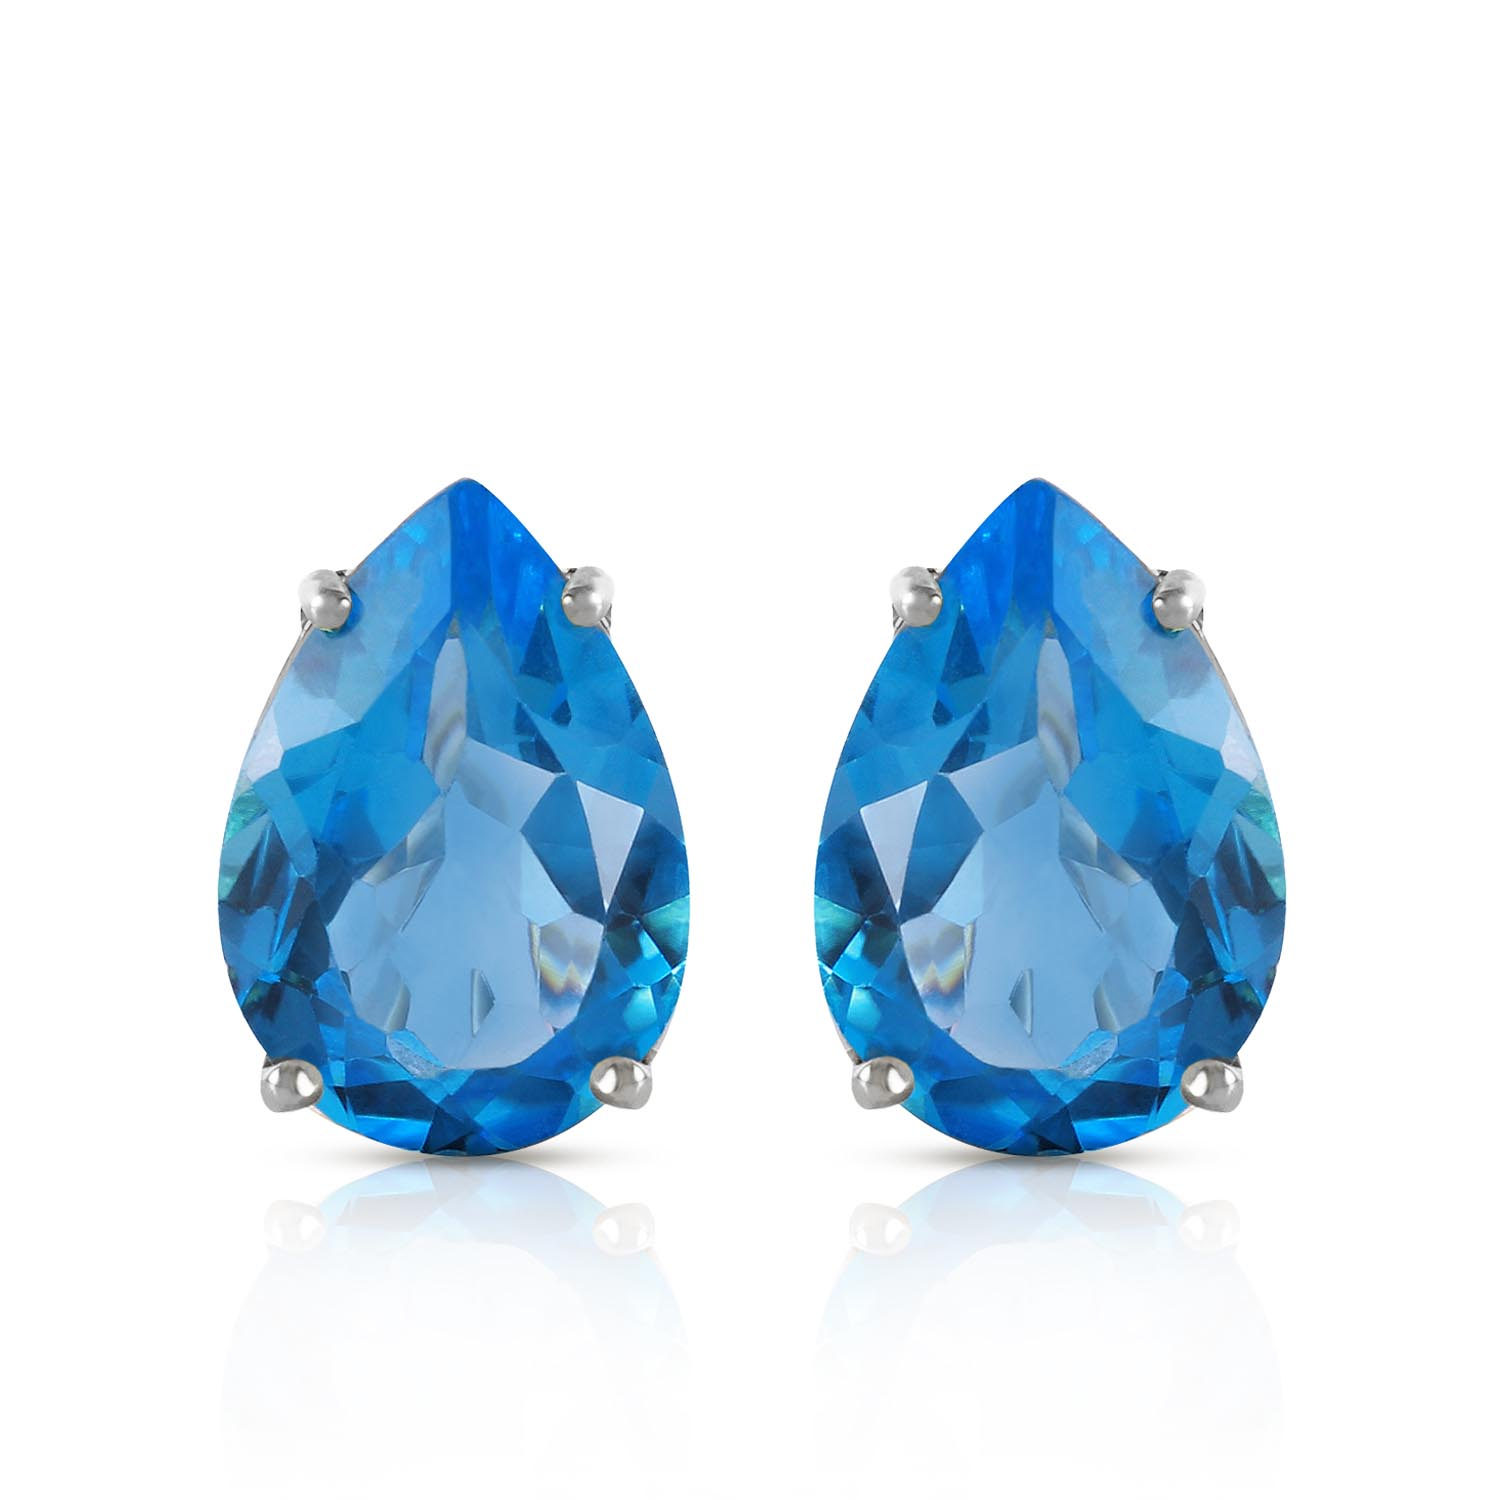 Blue Topaz Droplet Stud Earrings 10.0ctw in 9ct White Gold